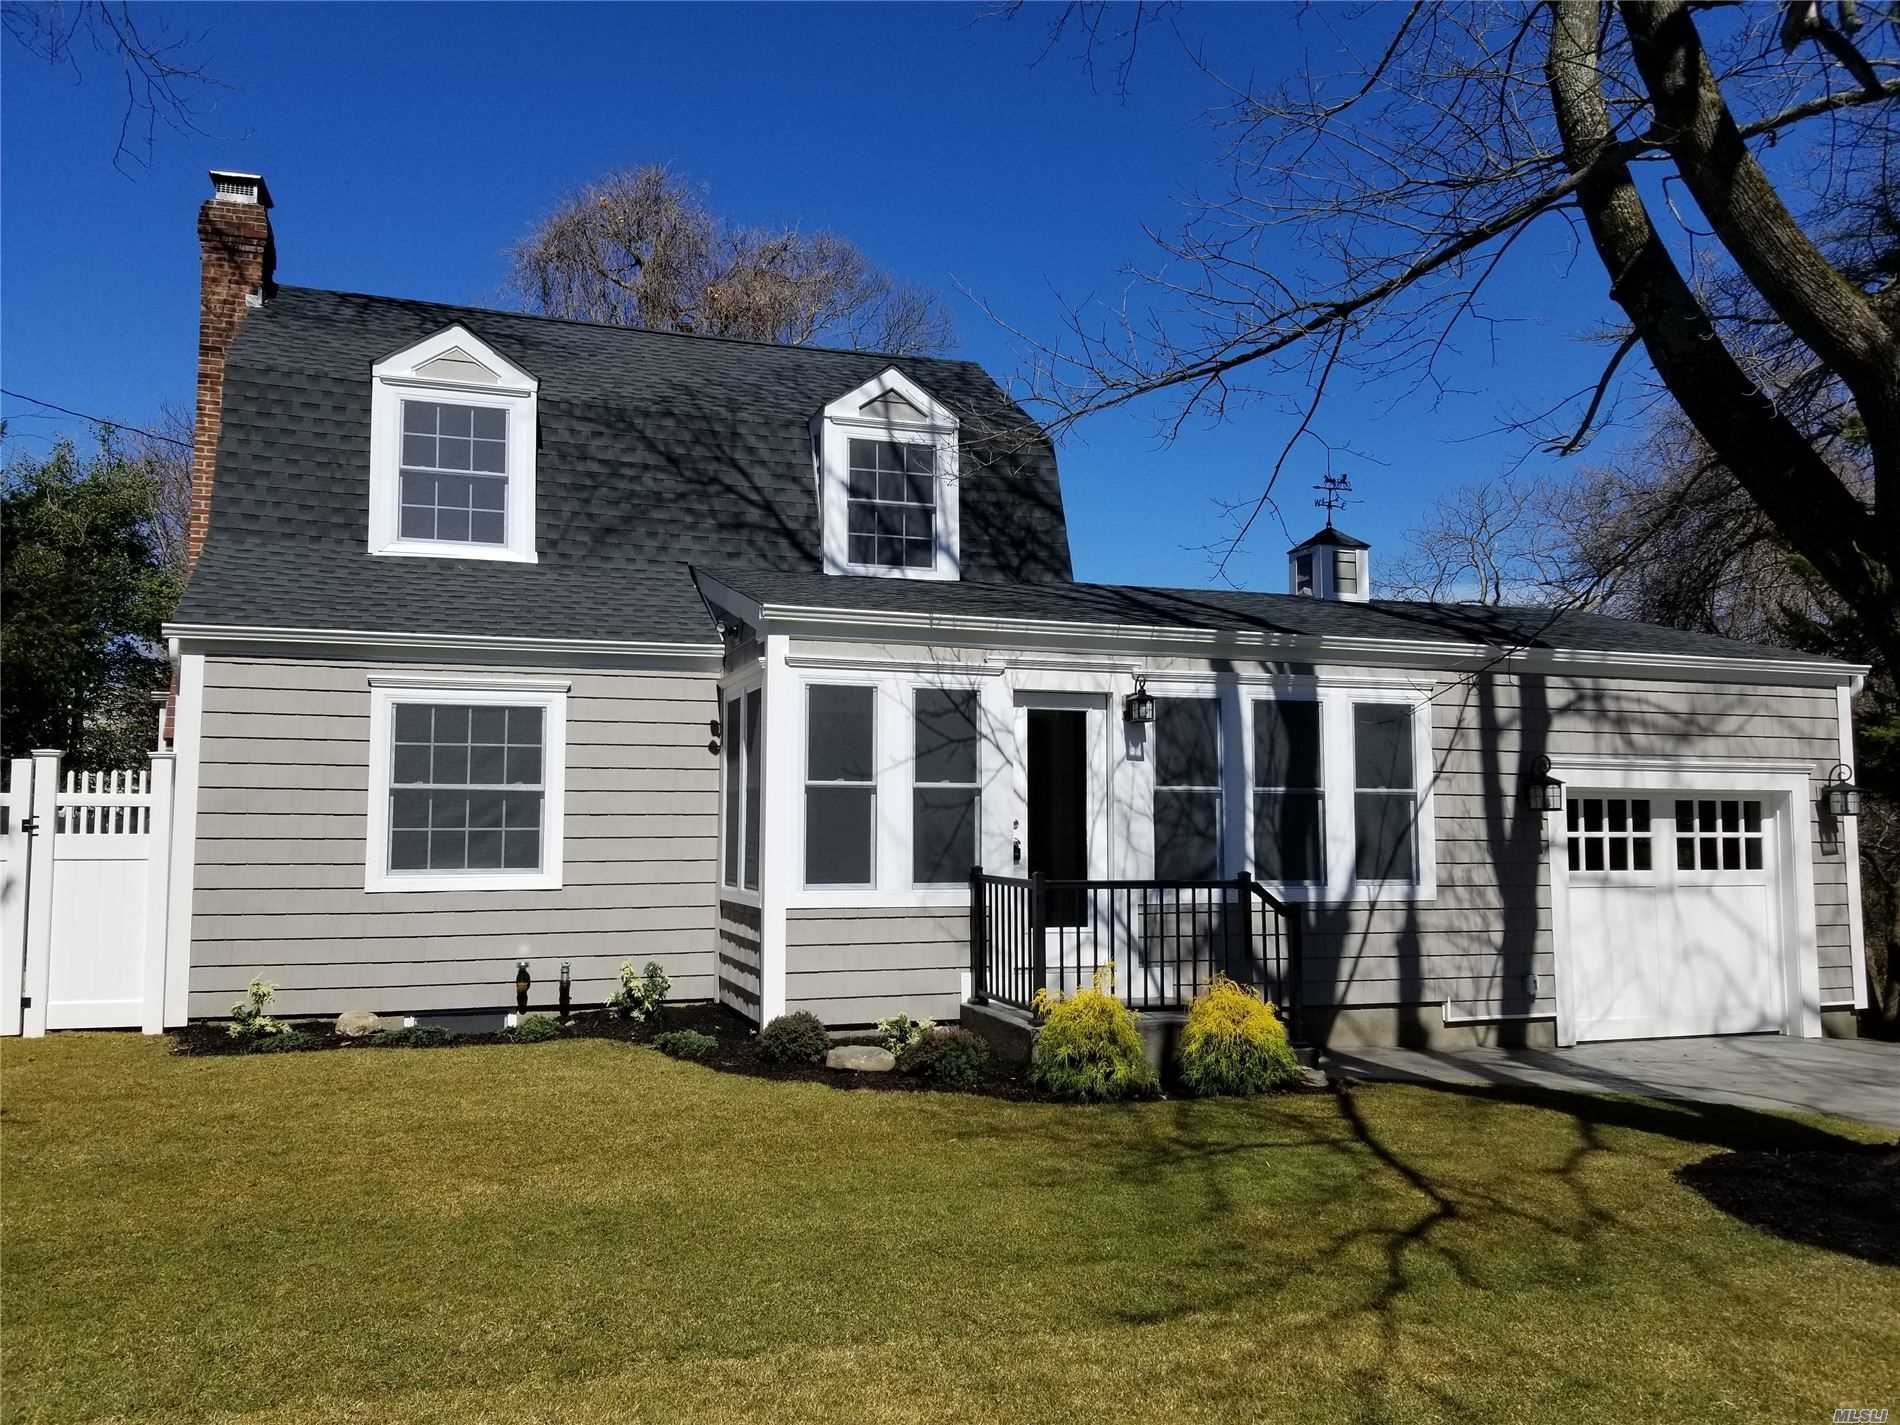 15 Winthrop Ct, Blue Point, NY 11715 - MLS#: 3217864